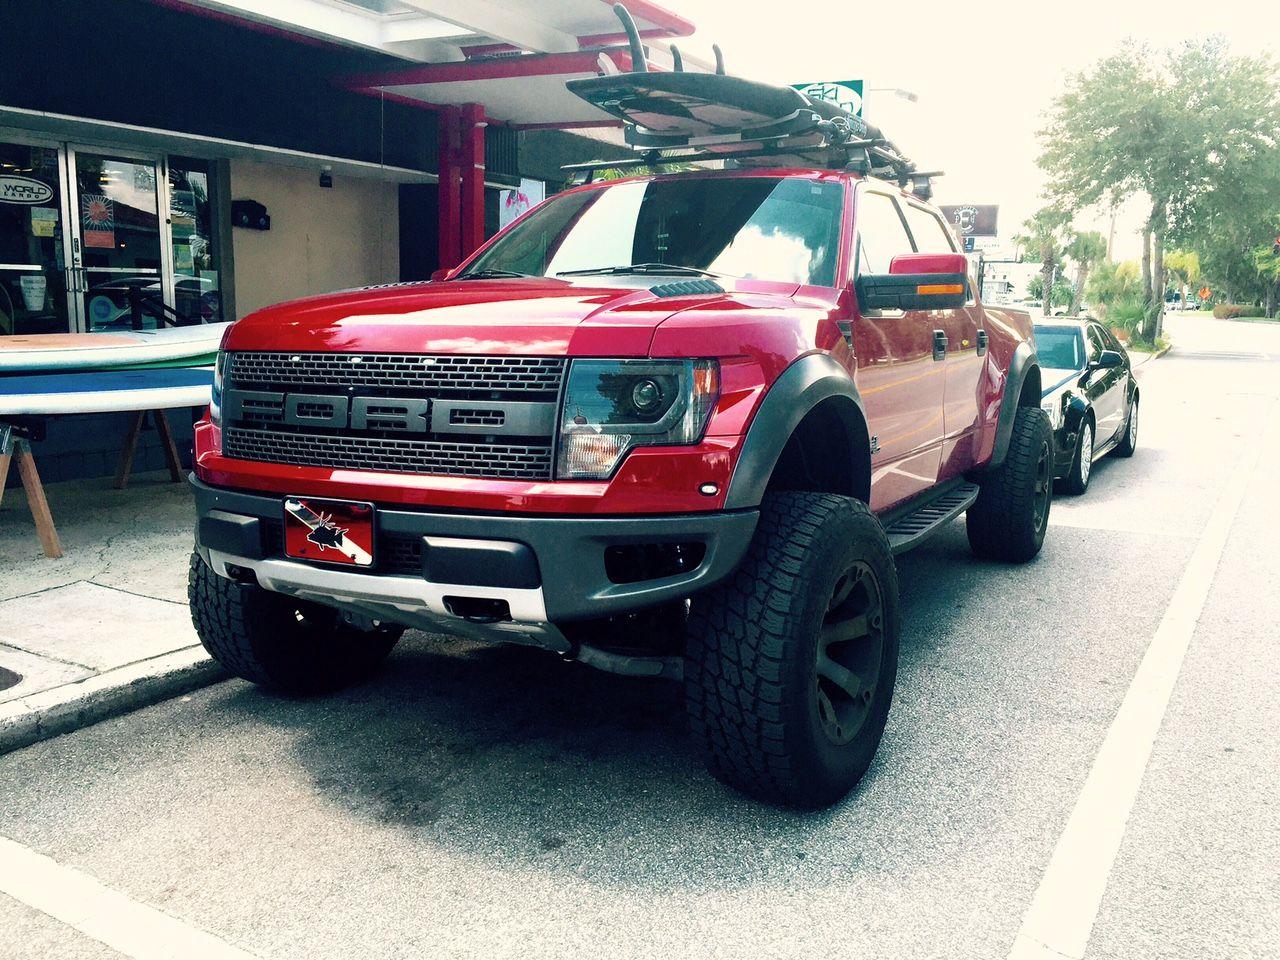 Ford Raptor By Roush With Thule Roof Rack Holding A Bote Paddleboard Ford Ranger Ford Raptor Ford Ranger Raptor